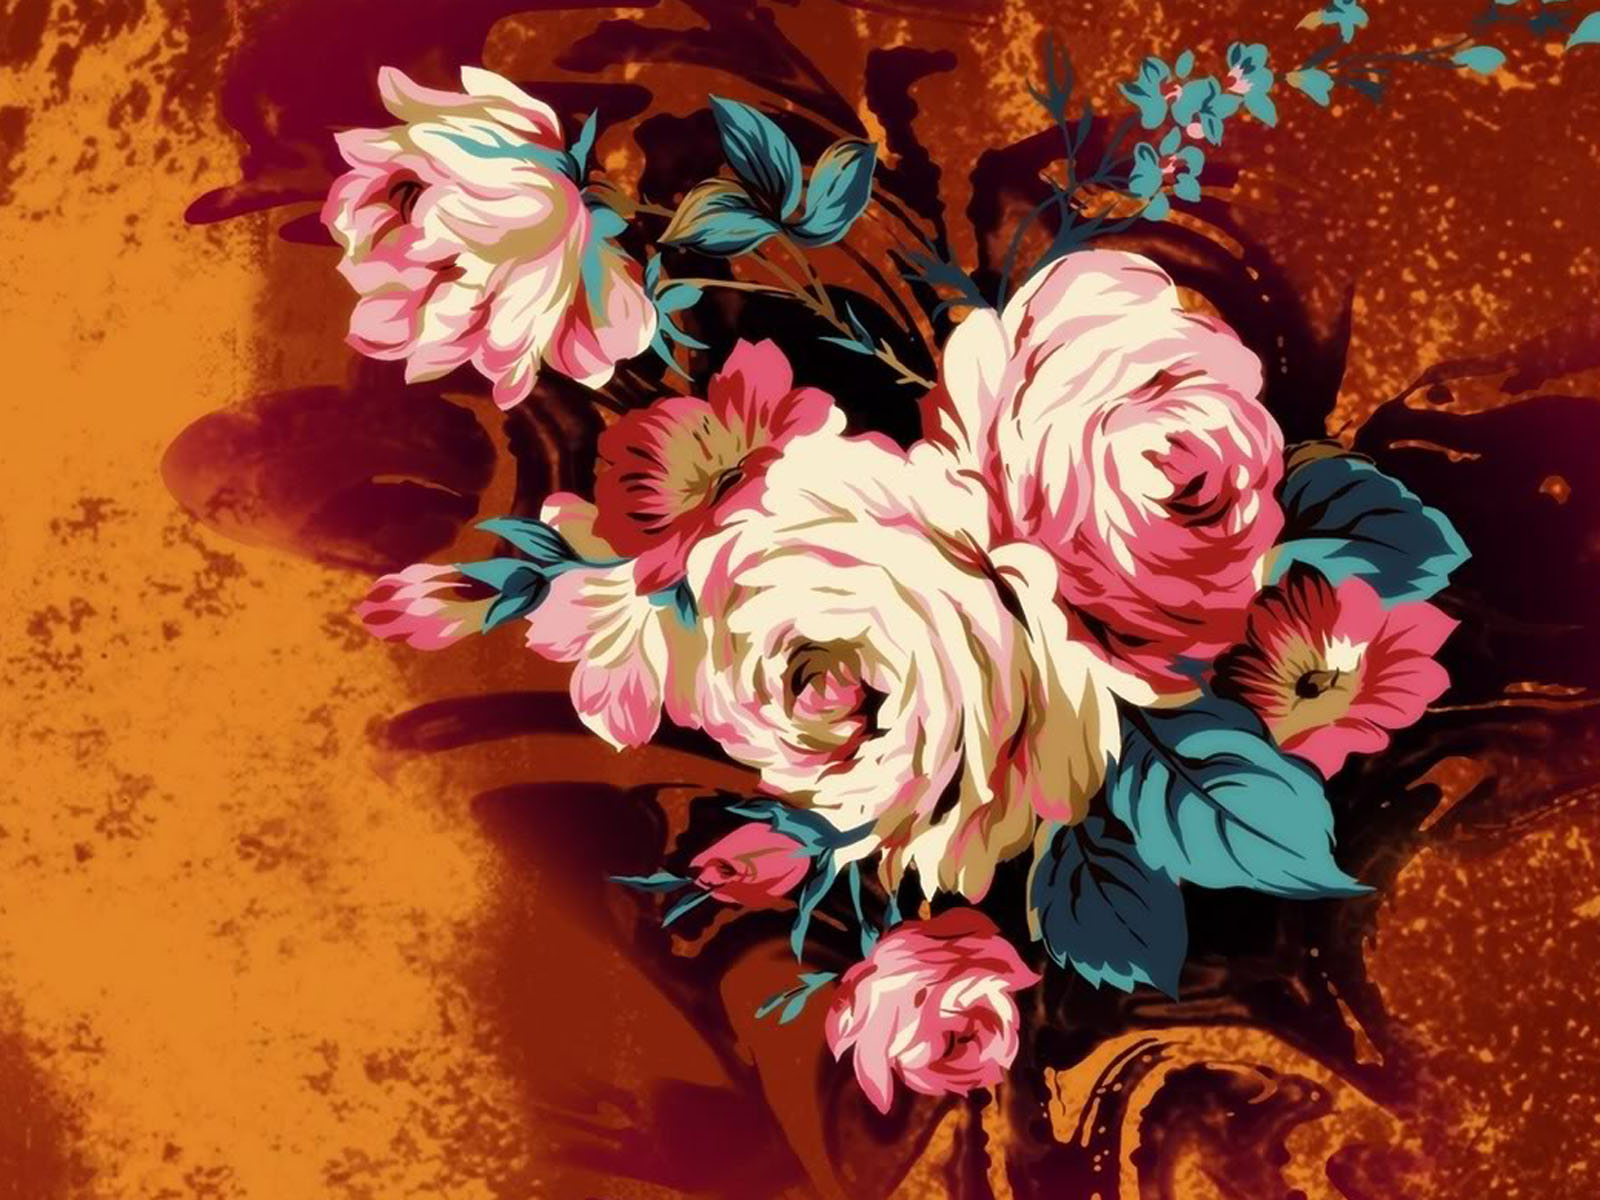 art flowers background wallpaper - photo #19